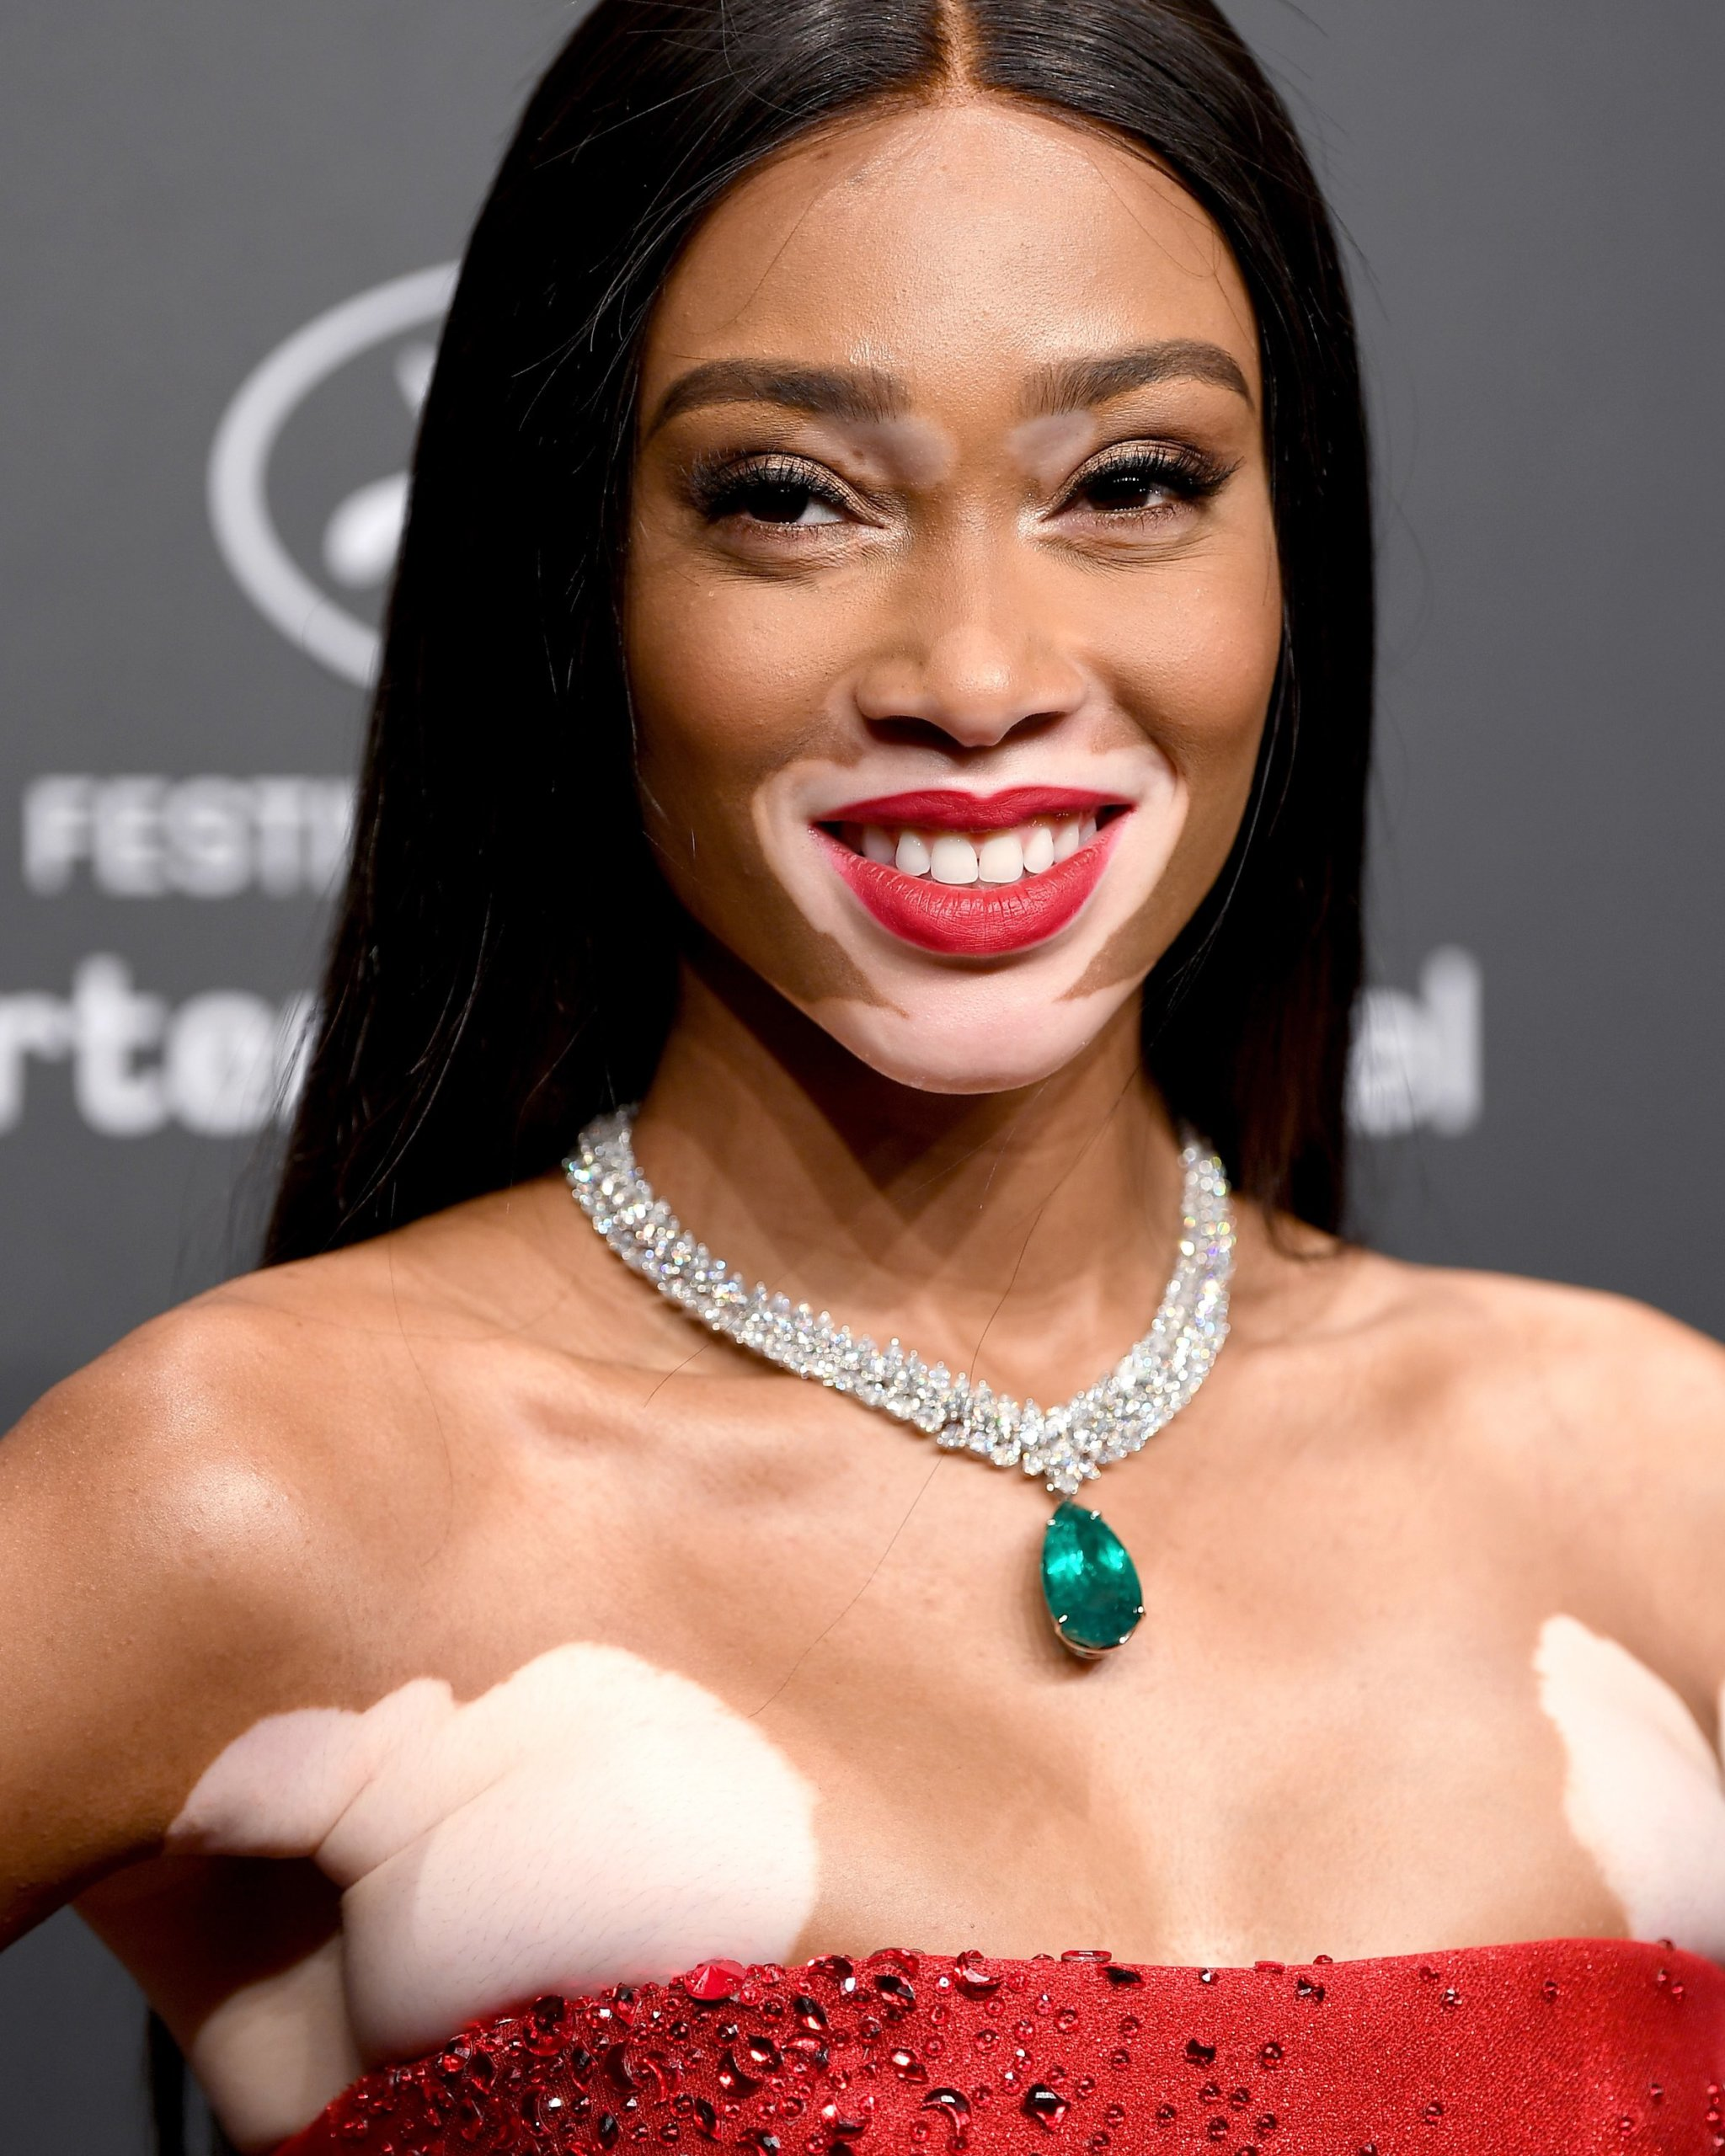 Pear shaped emerald & marquise diamond pendant necklace from Chopard worn by Winnie Harlow at 2017 Cannes Film Festival